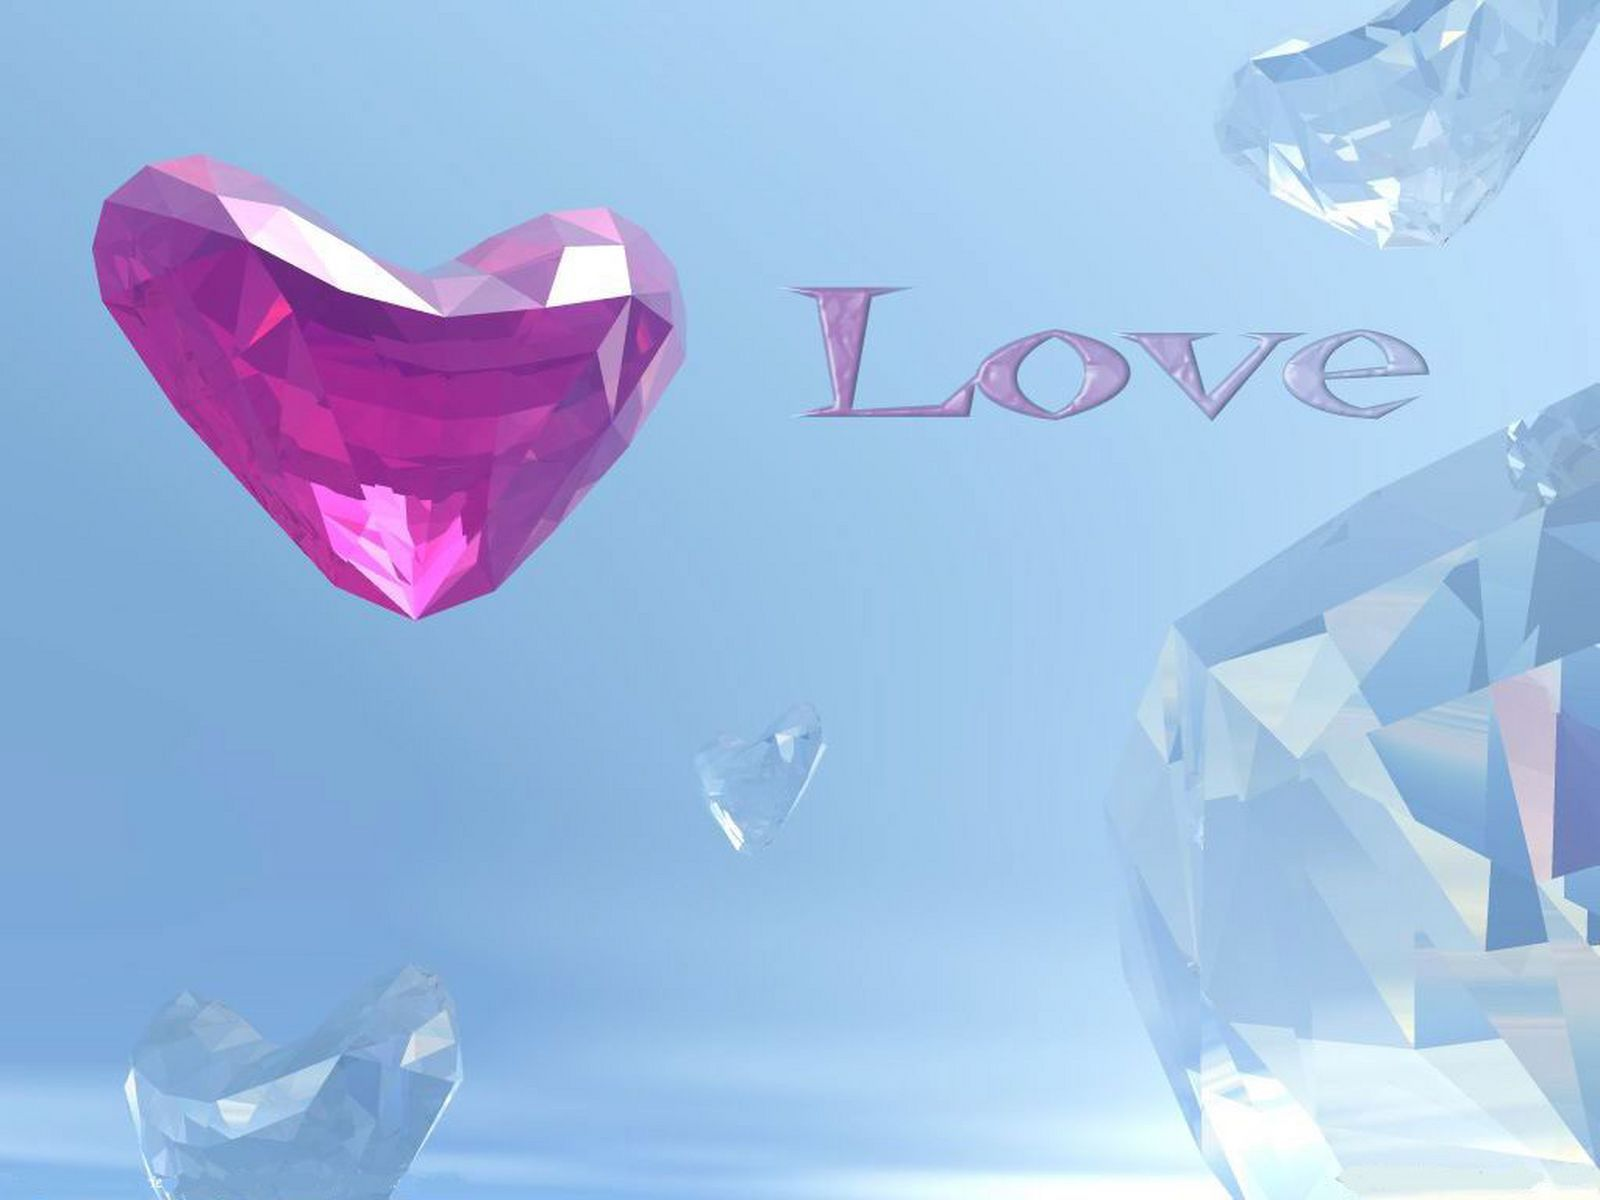 3d love wallpapers for windows 8 1 wide wallpaper hdlovewall 3d love wallpapers for windows 8 1 wide wallpaper sciox Image collections